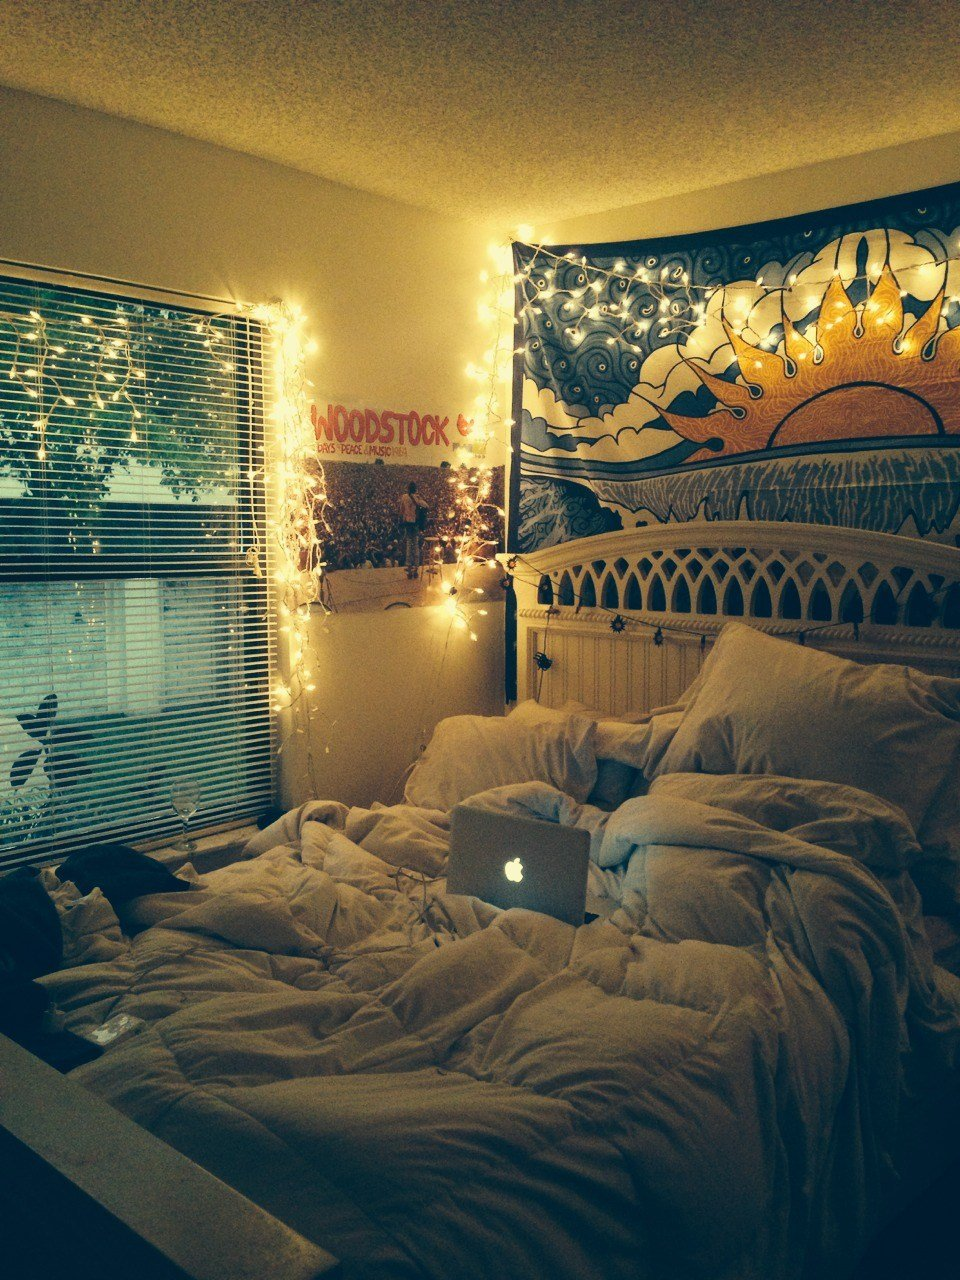 Best Built Tumblr Bedroom With Your Own Taste Atzine Com With Pictures